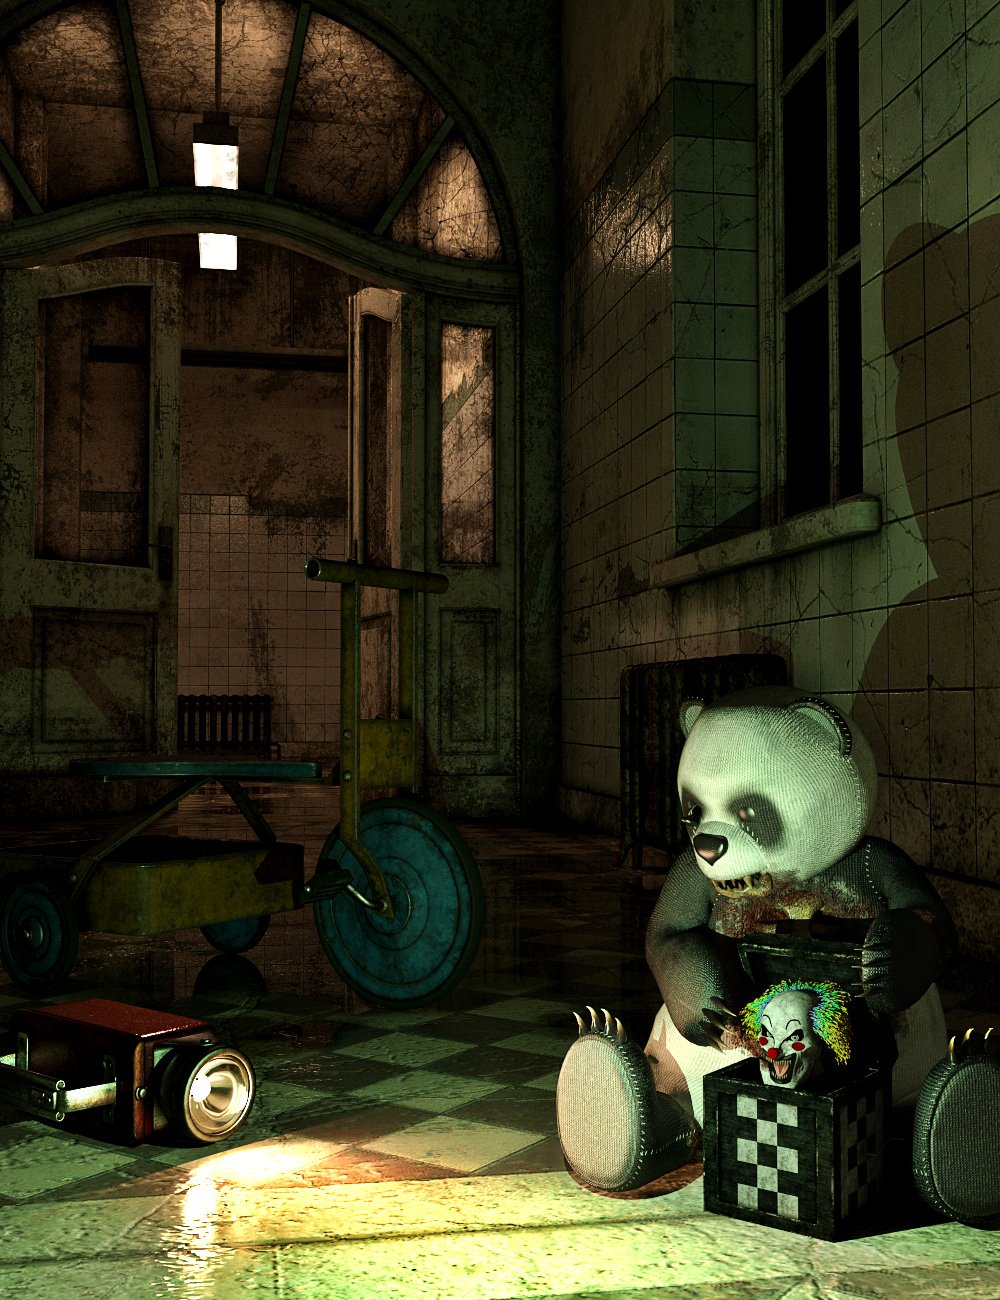 Haunted Toys by: ARTCollab, 3D Models by Daz 3D